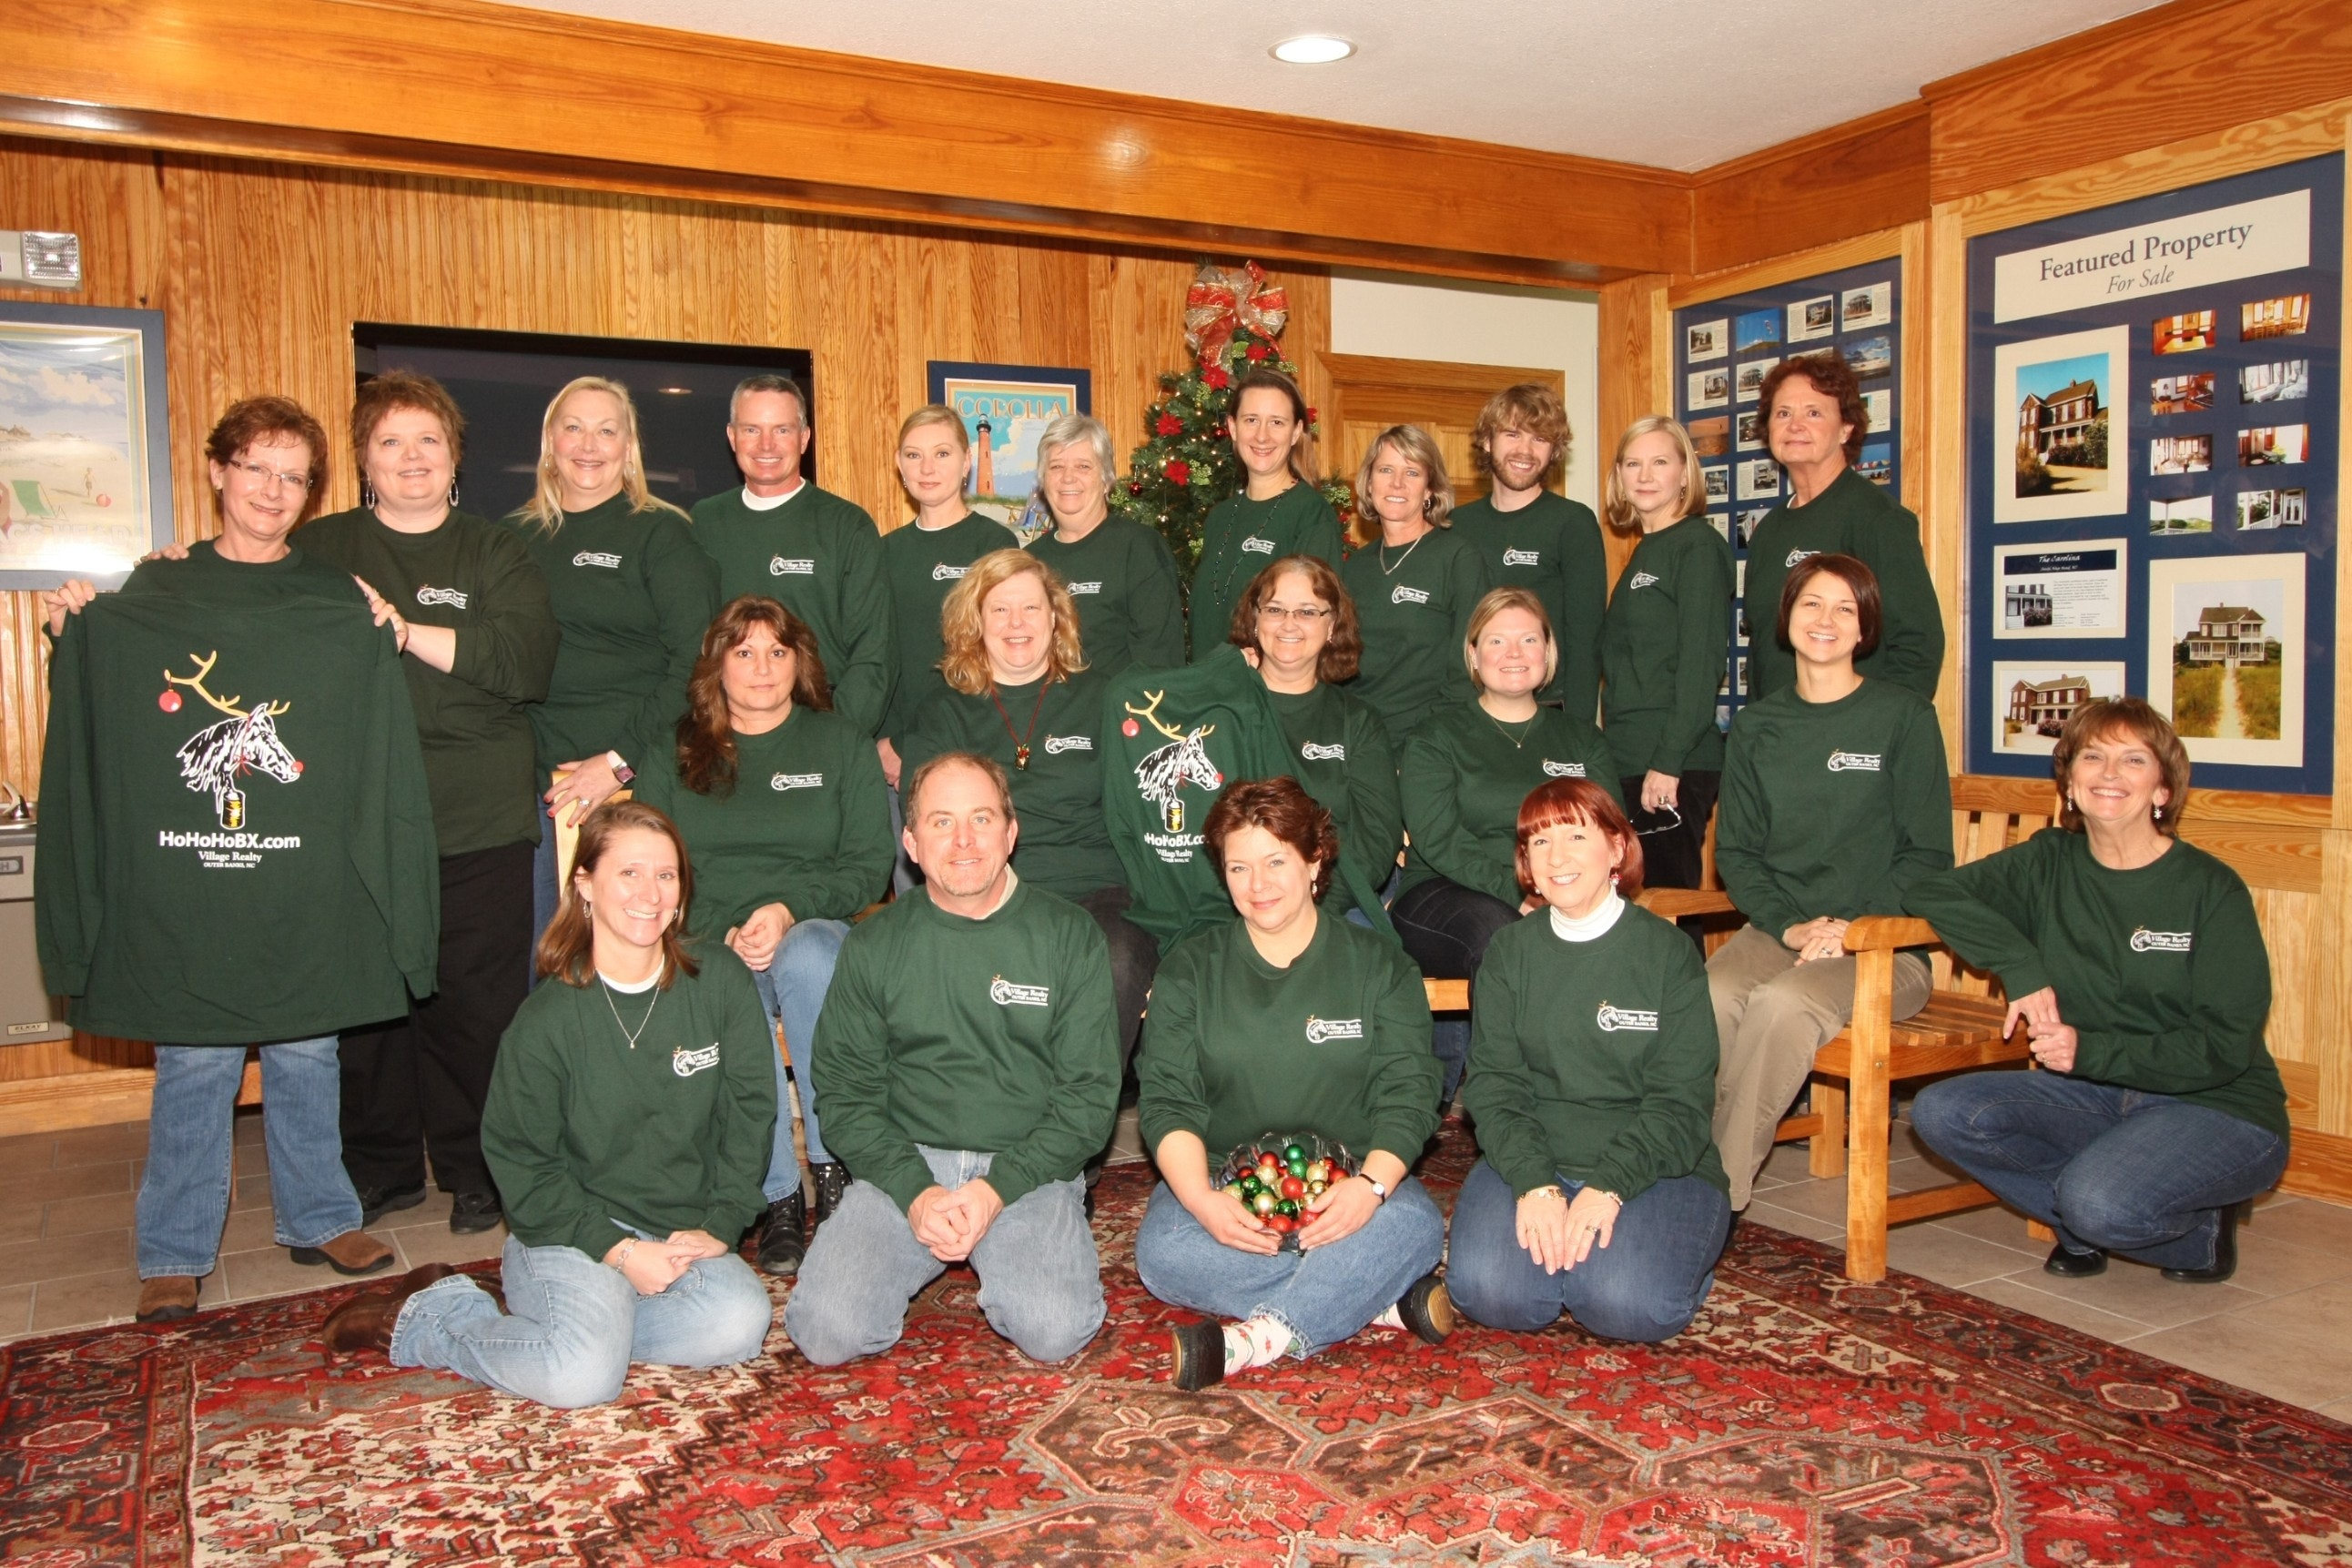 Village Realty for Dare County Angel Gift Fund 2015